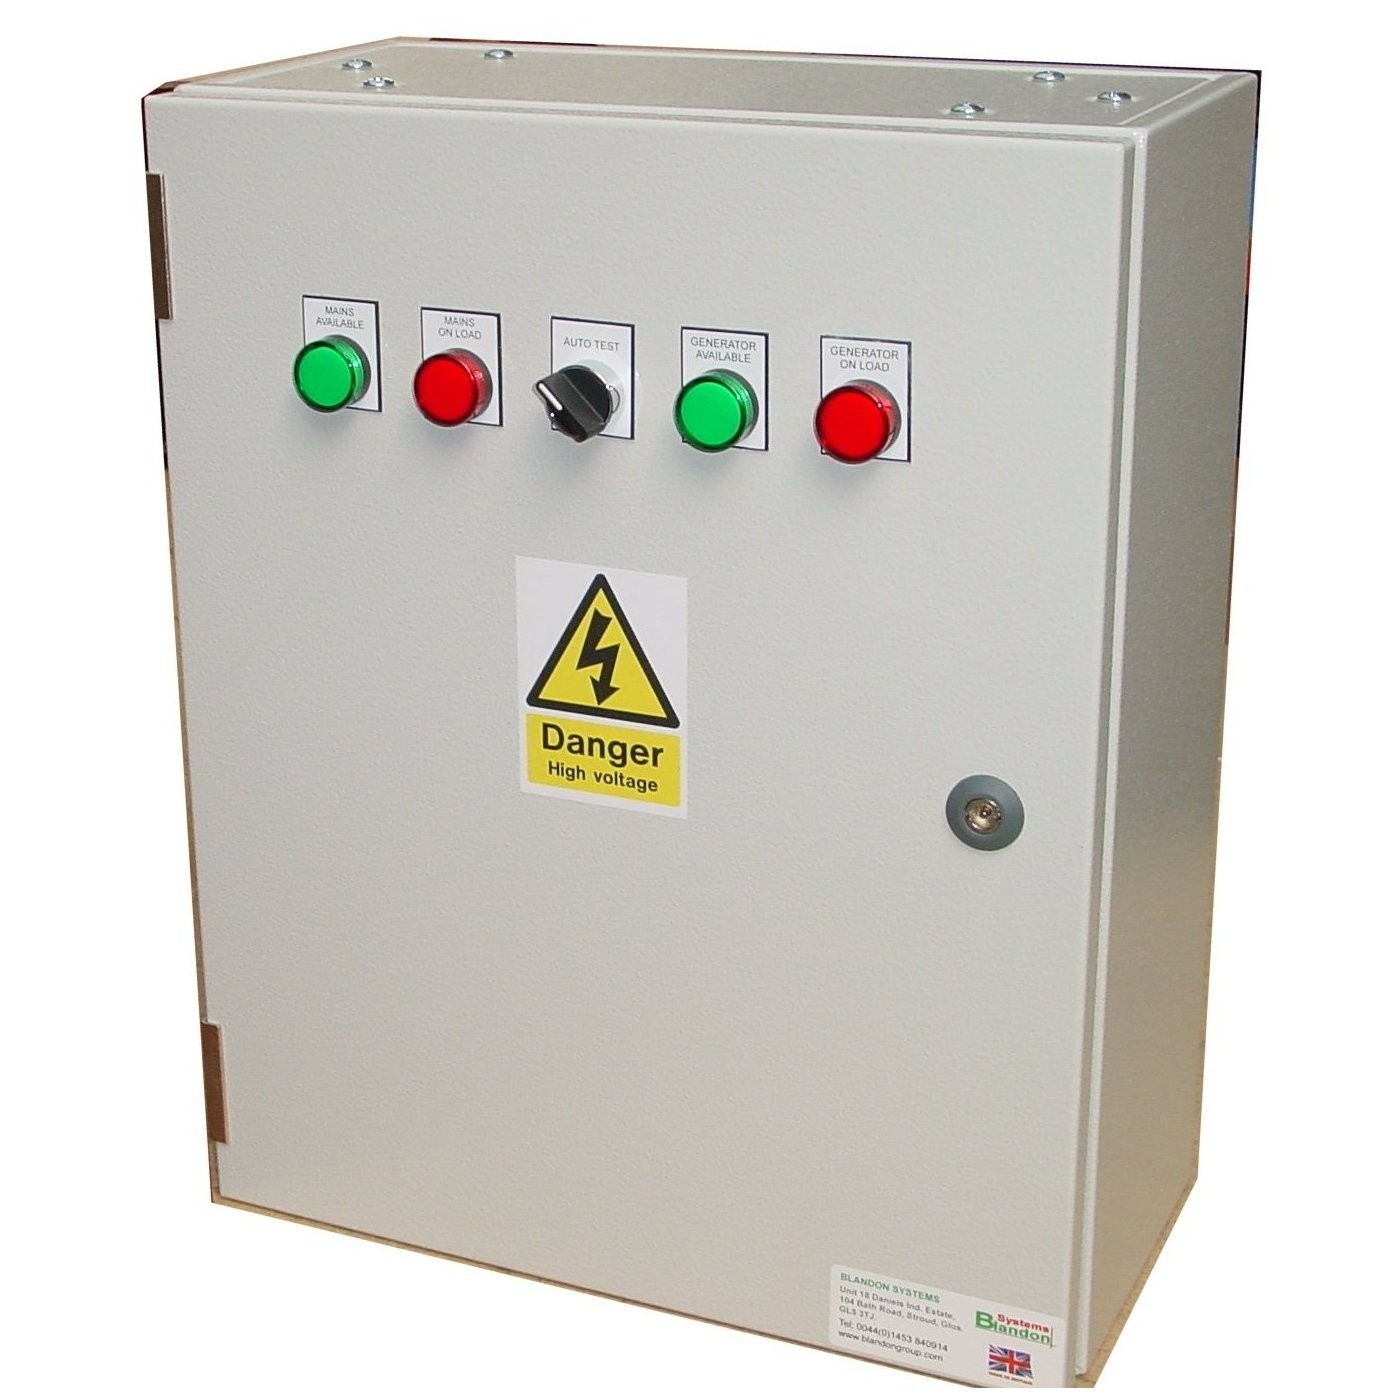 125A ATS Single Phase 230V, UVR Controlled, ABB Contactors